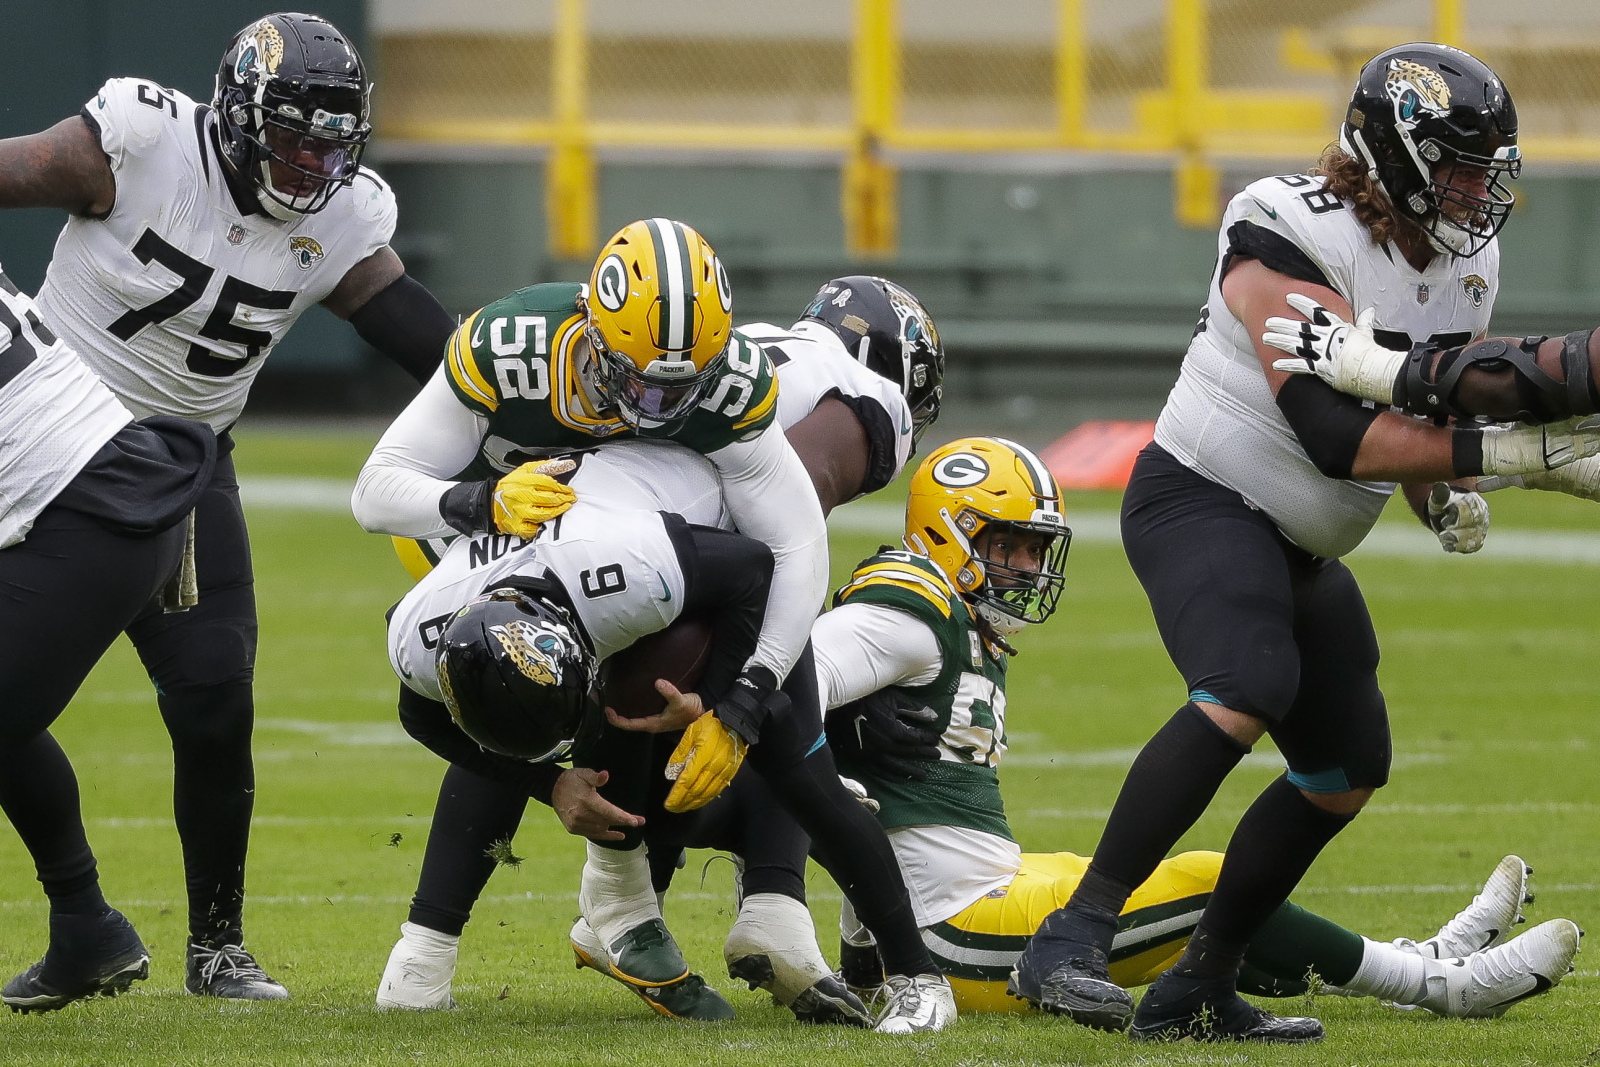 Packers pass rush could be set for big game vs. Eagles